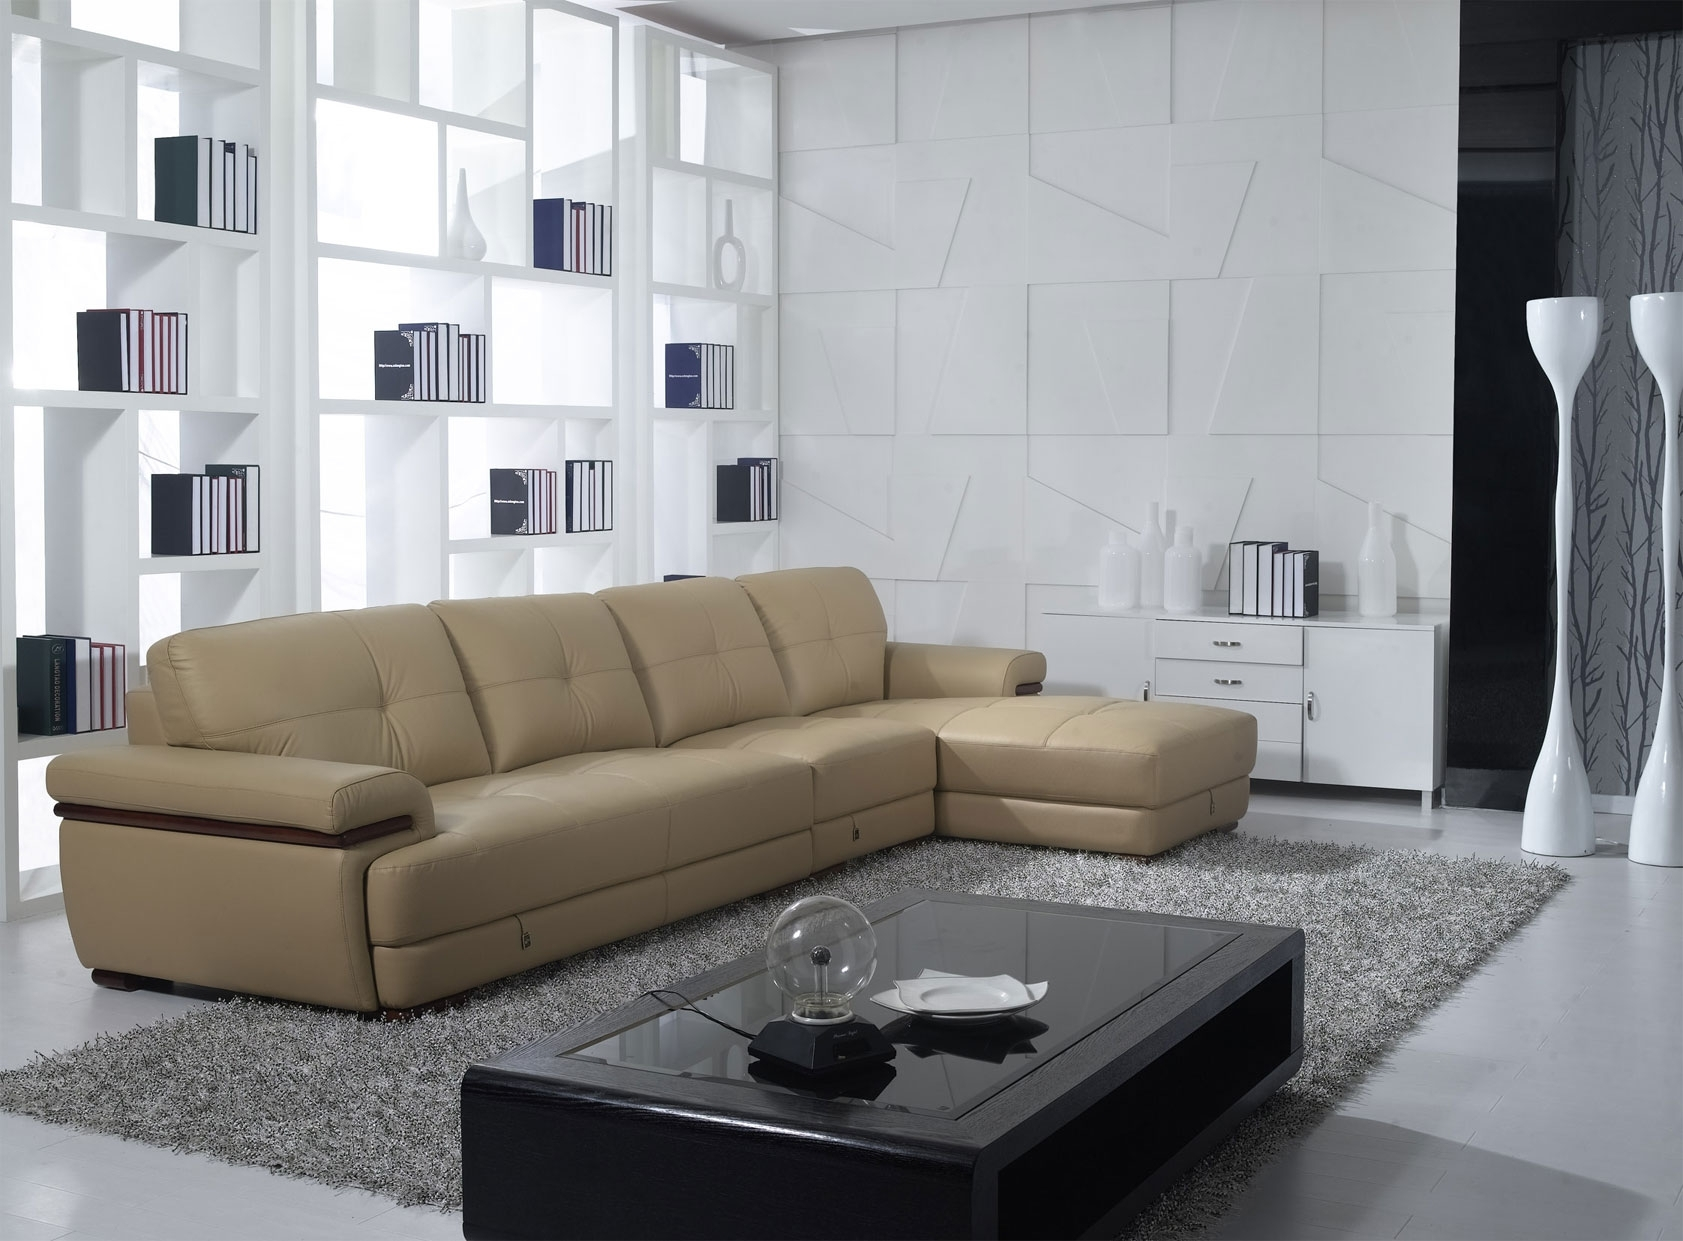 Fancy Quality Sectional Sofas 15 And Couches Ideas With High Sofa With Good Quality Sectional Sofas (View 2 of 10)